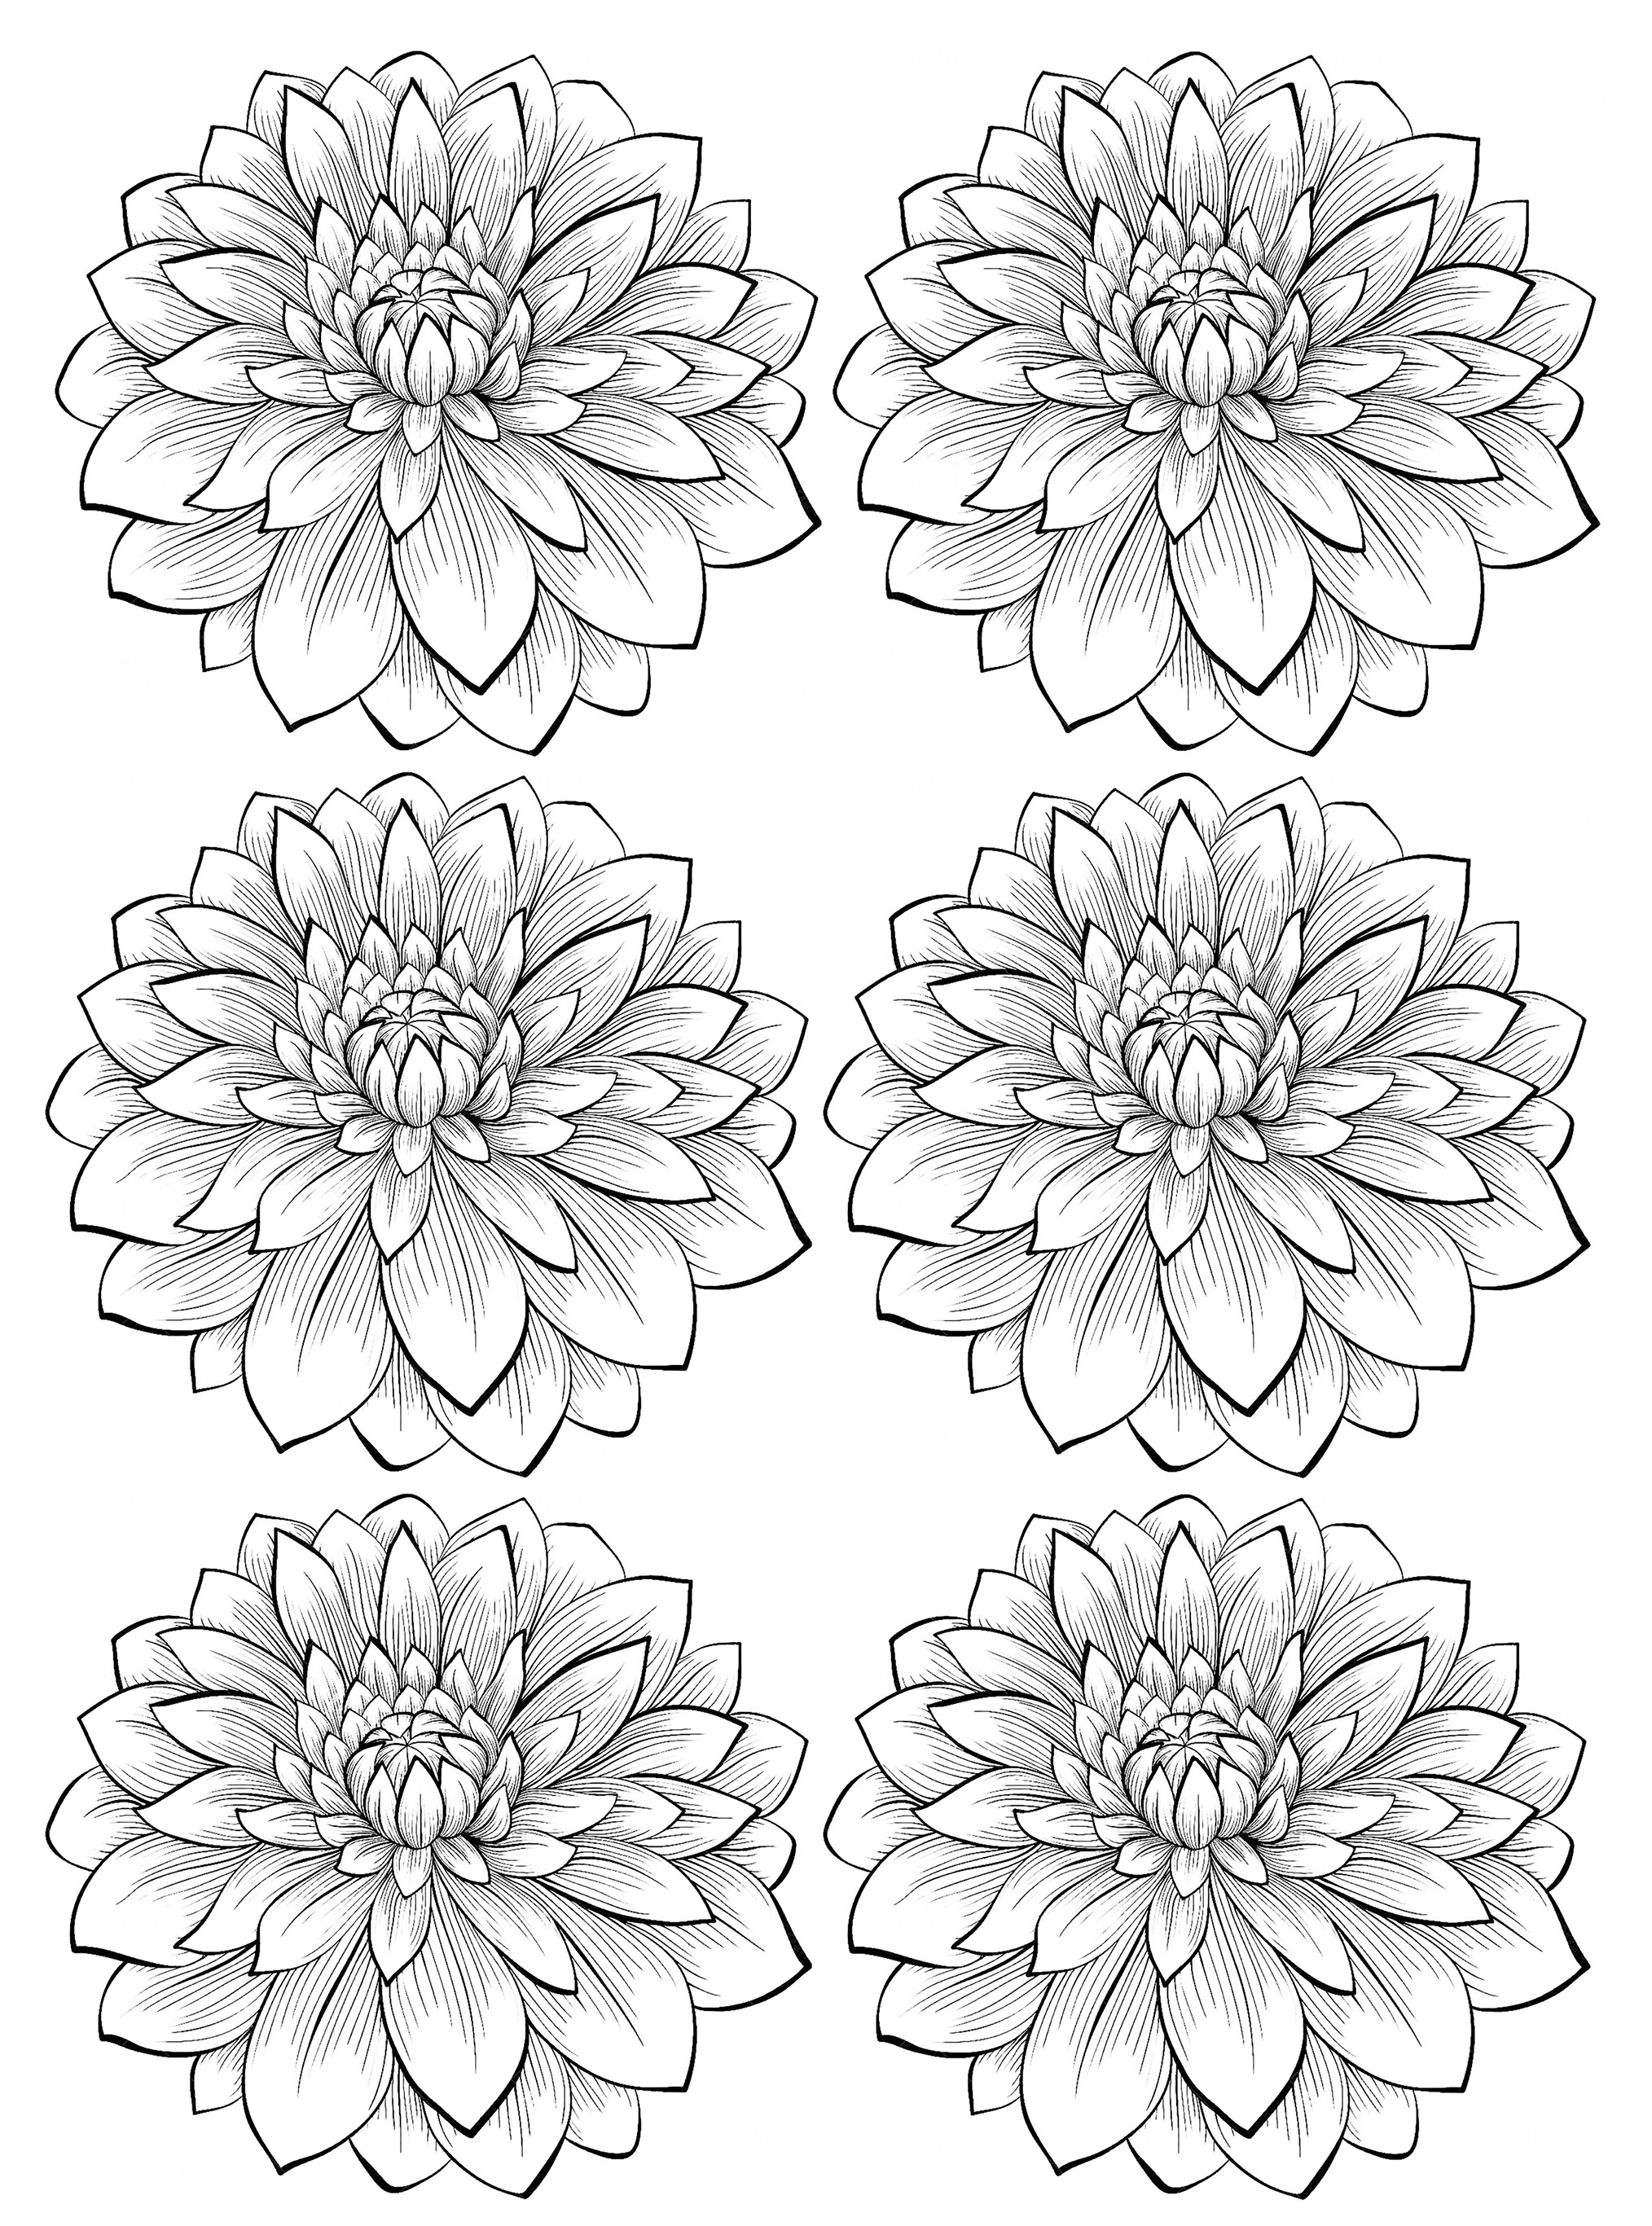 Six dahlia flower Flowers Adult Coloring Pages